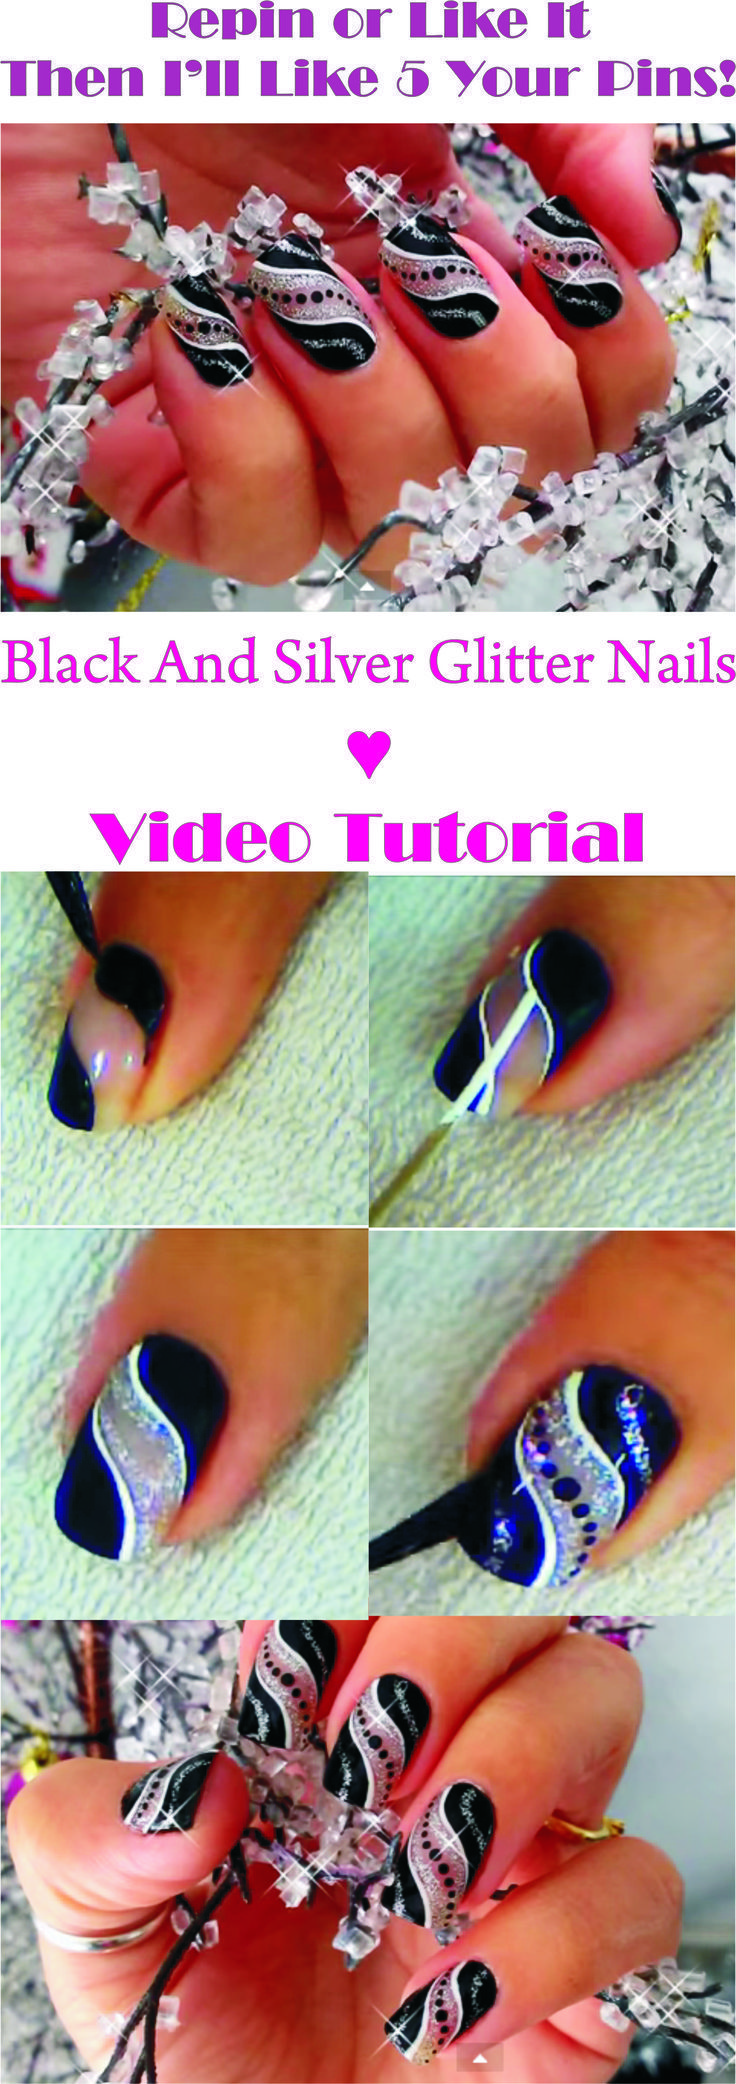 awesome ♥ Super Easy Party Nail Art | Black And Silver Glitter ...